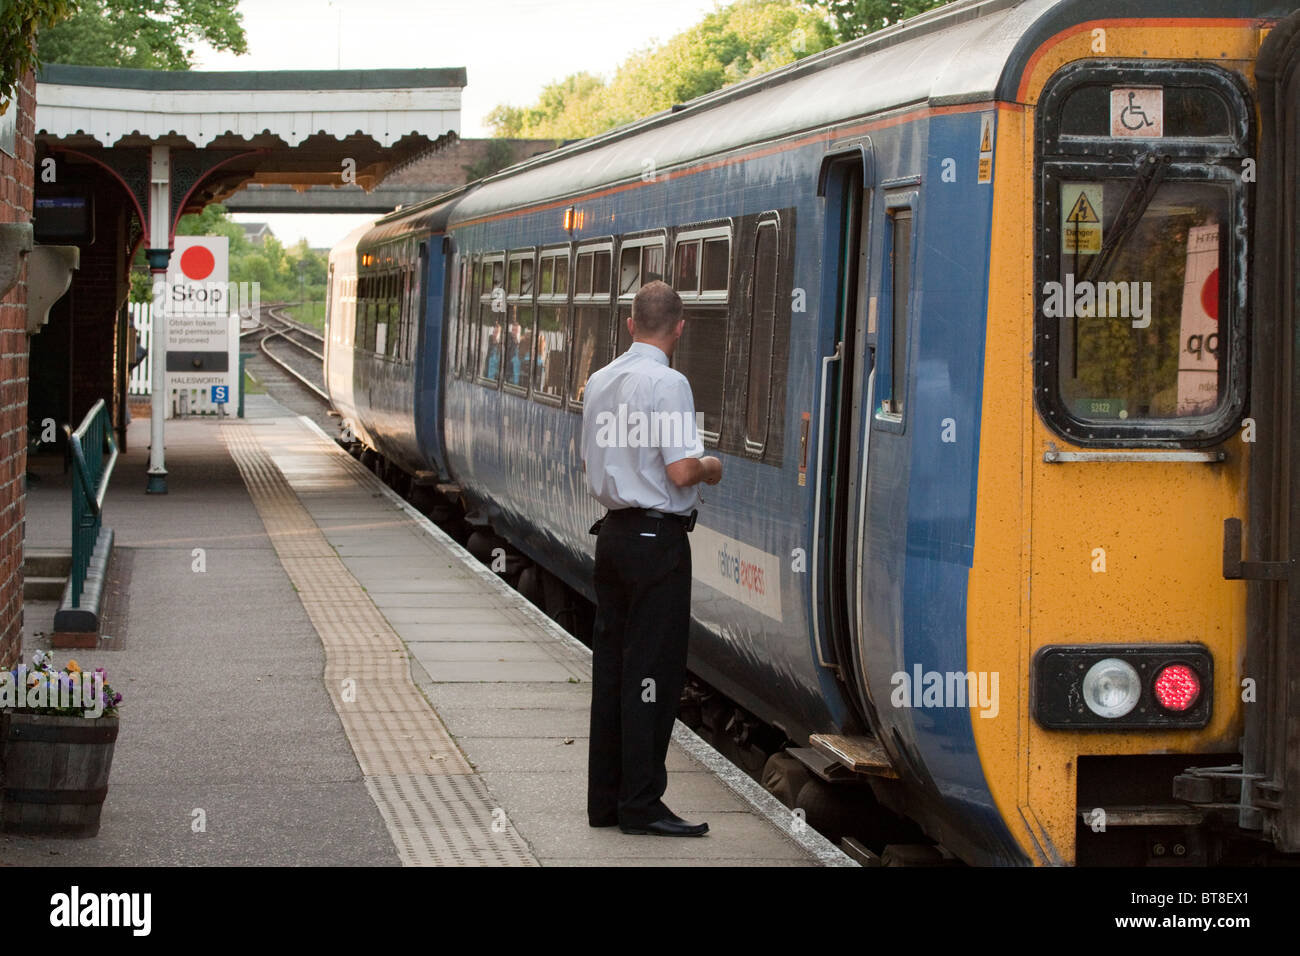 Guard of two coach local train checks empty platform at Halesworth station in Suffolk - Stock Image